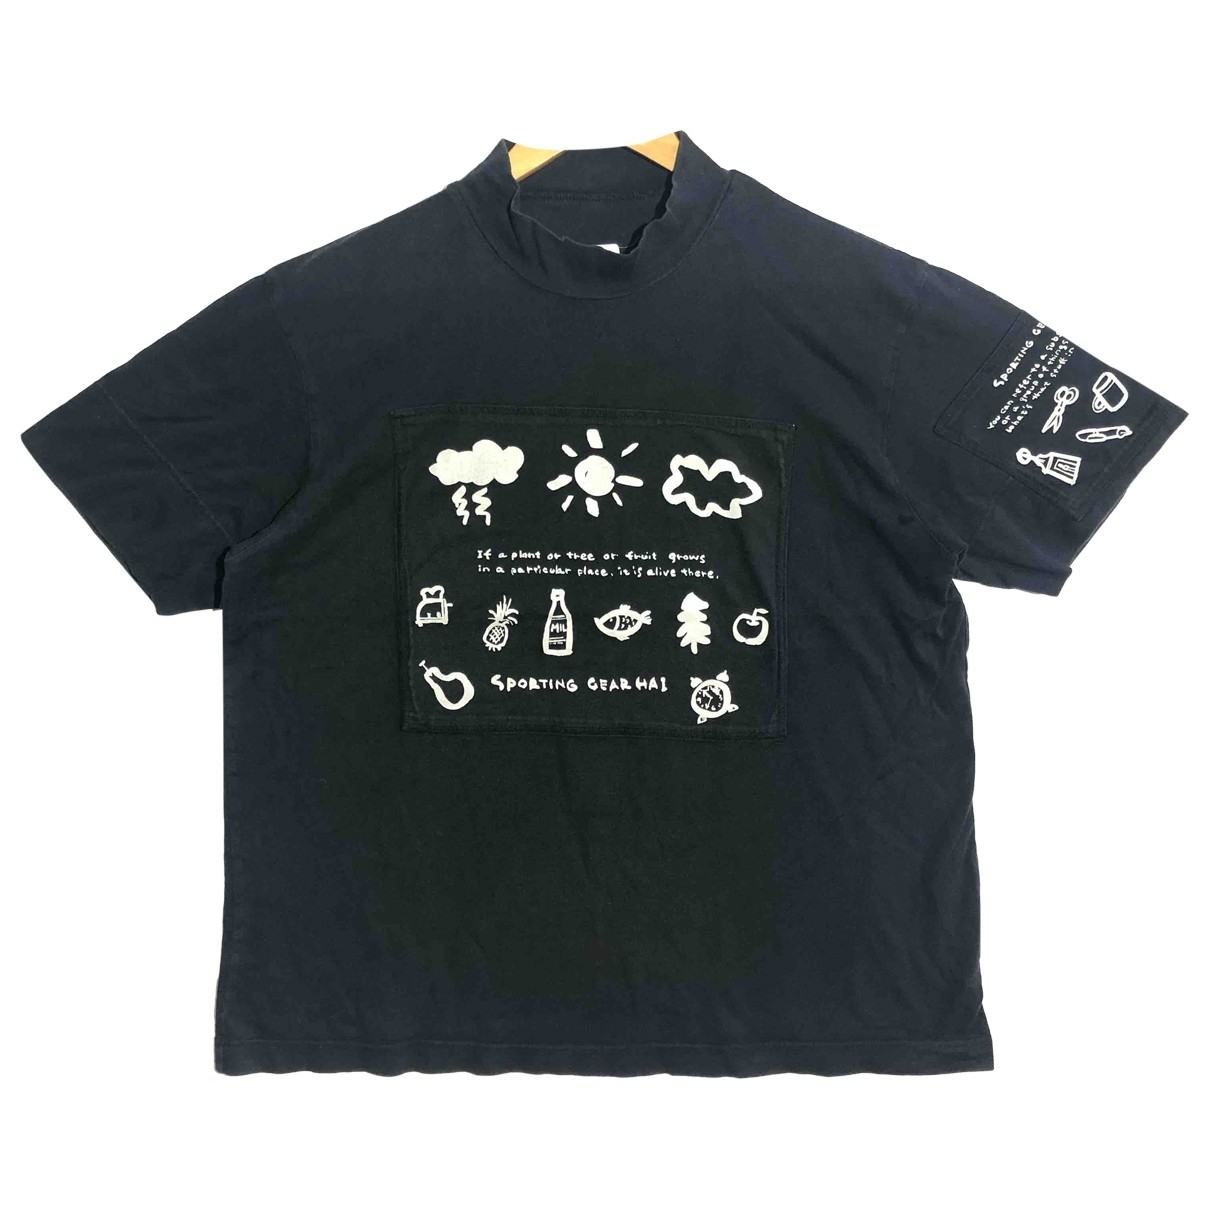 Issey Miyake - Tee shirts   pour homme en coton - noir